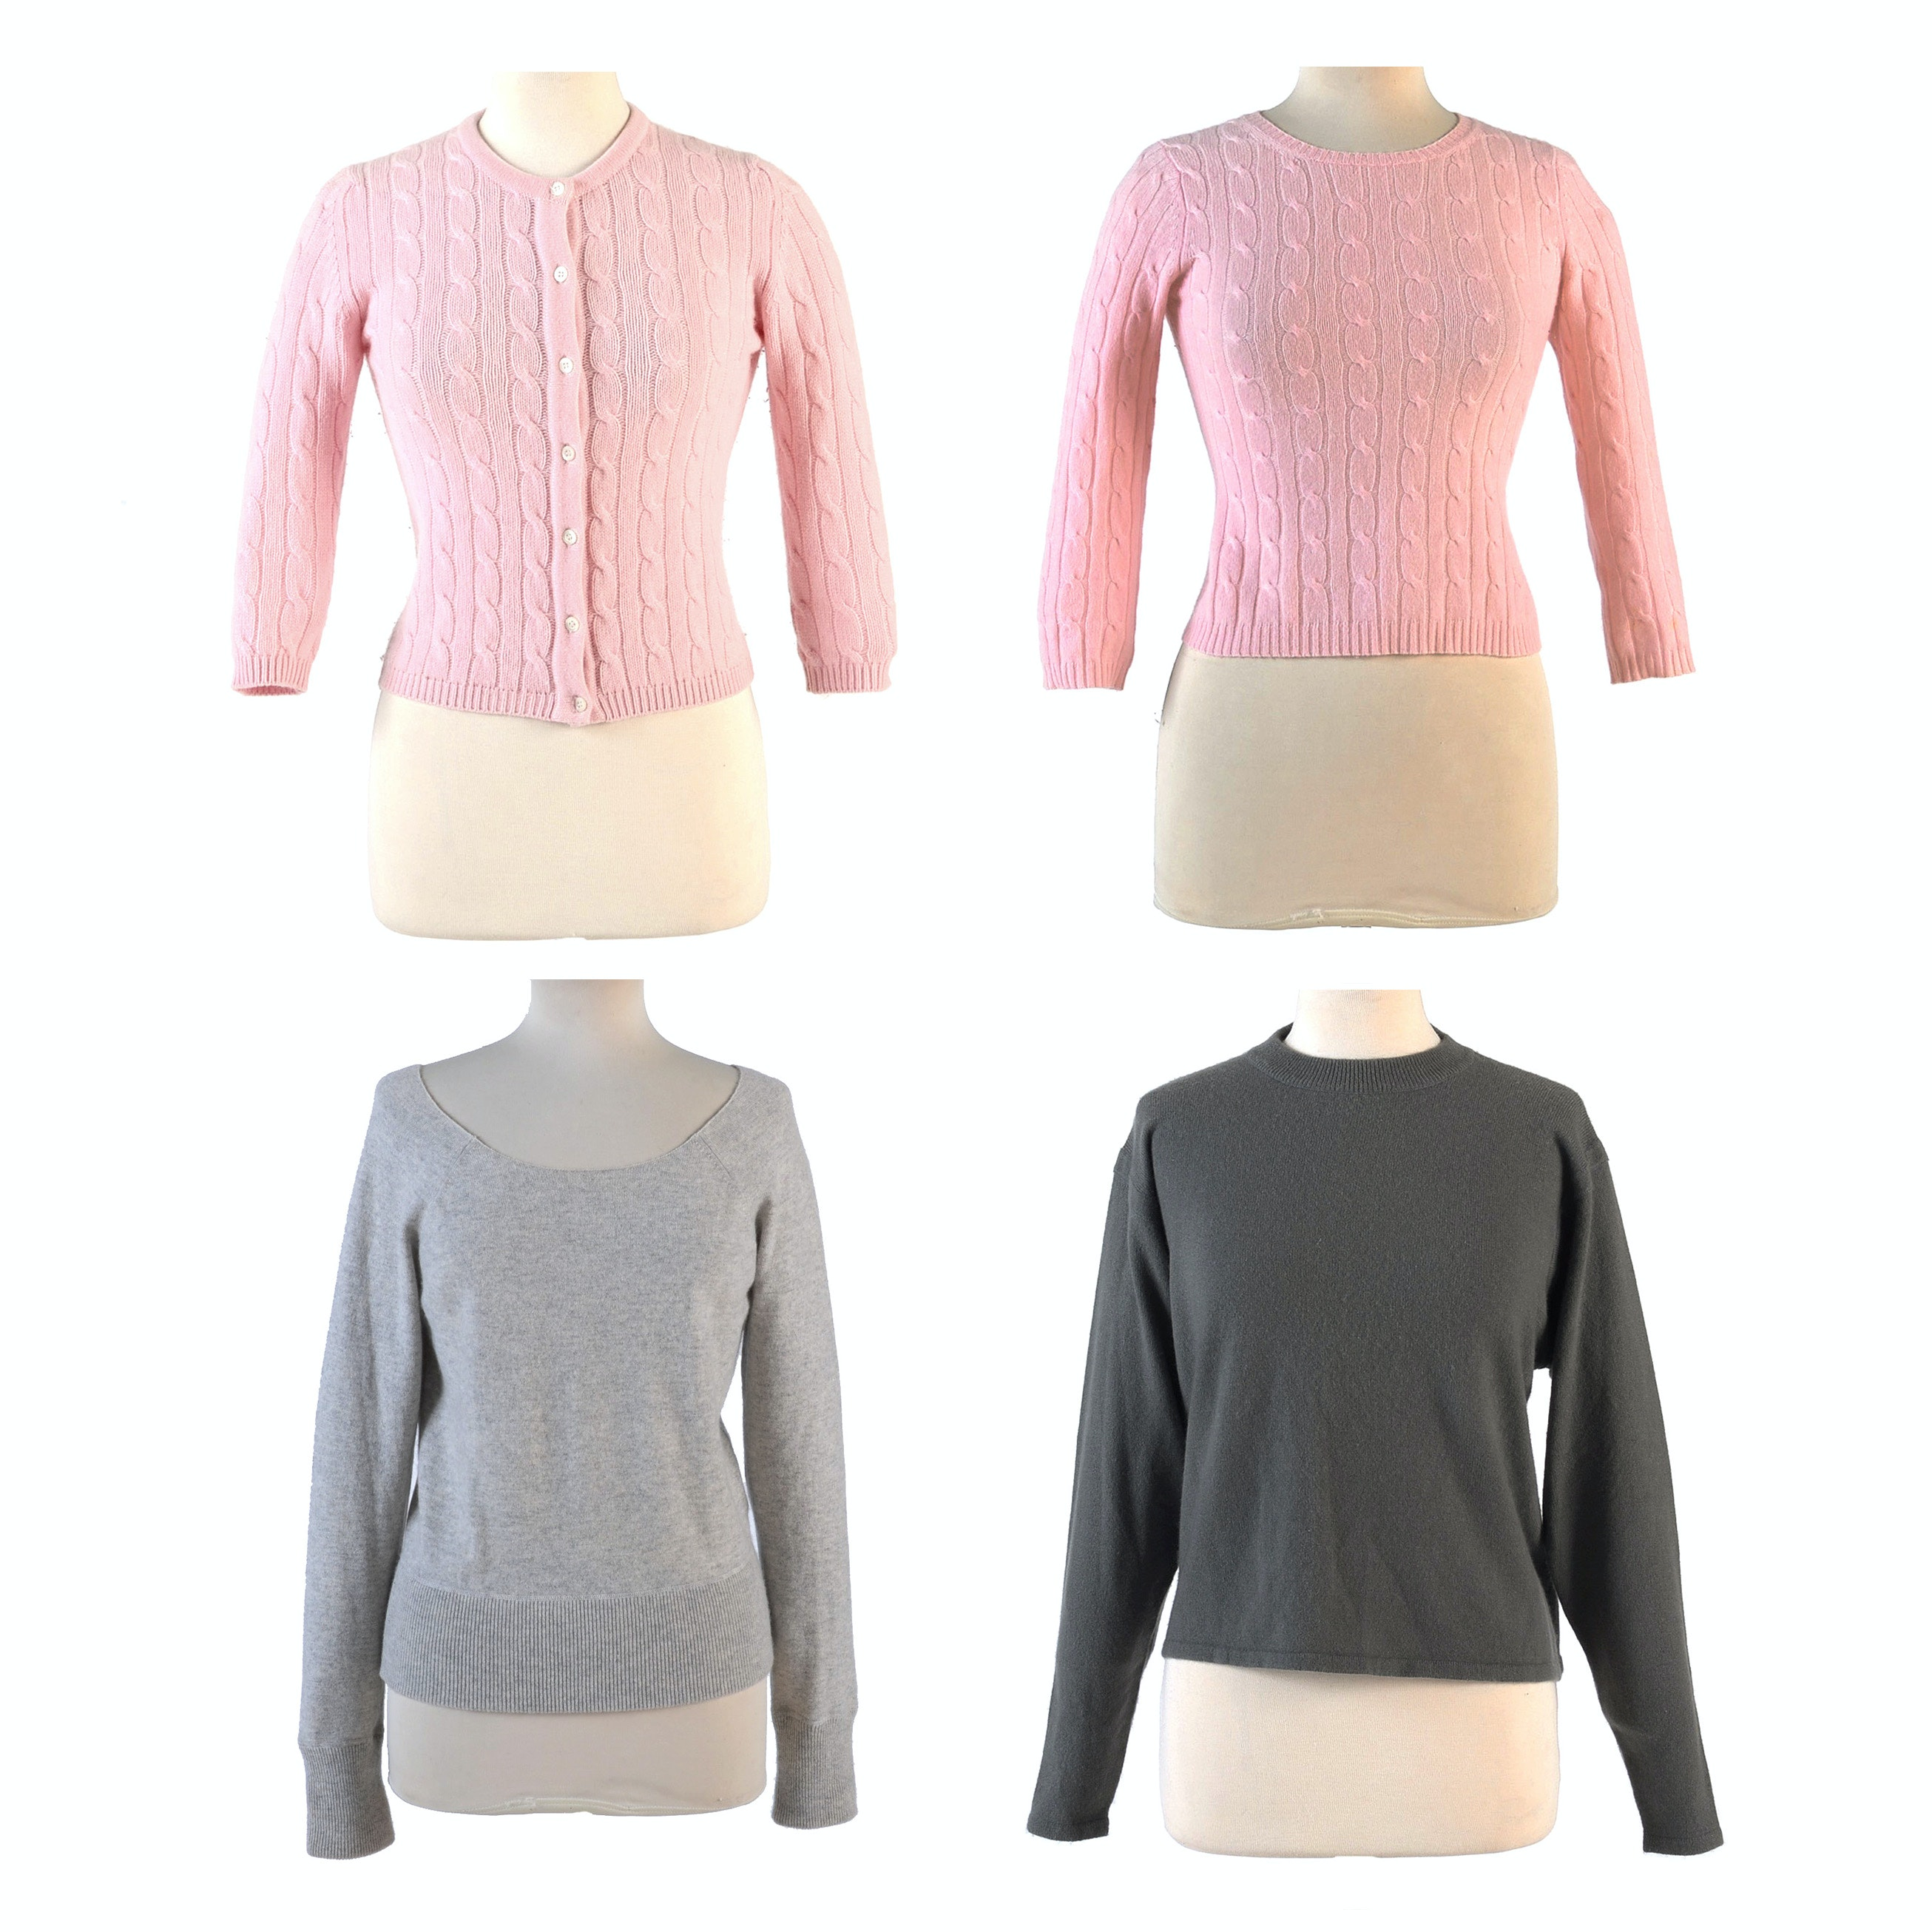 Gray and Pink Cashmere Sweaters